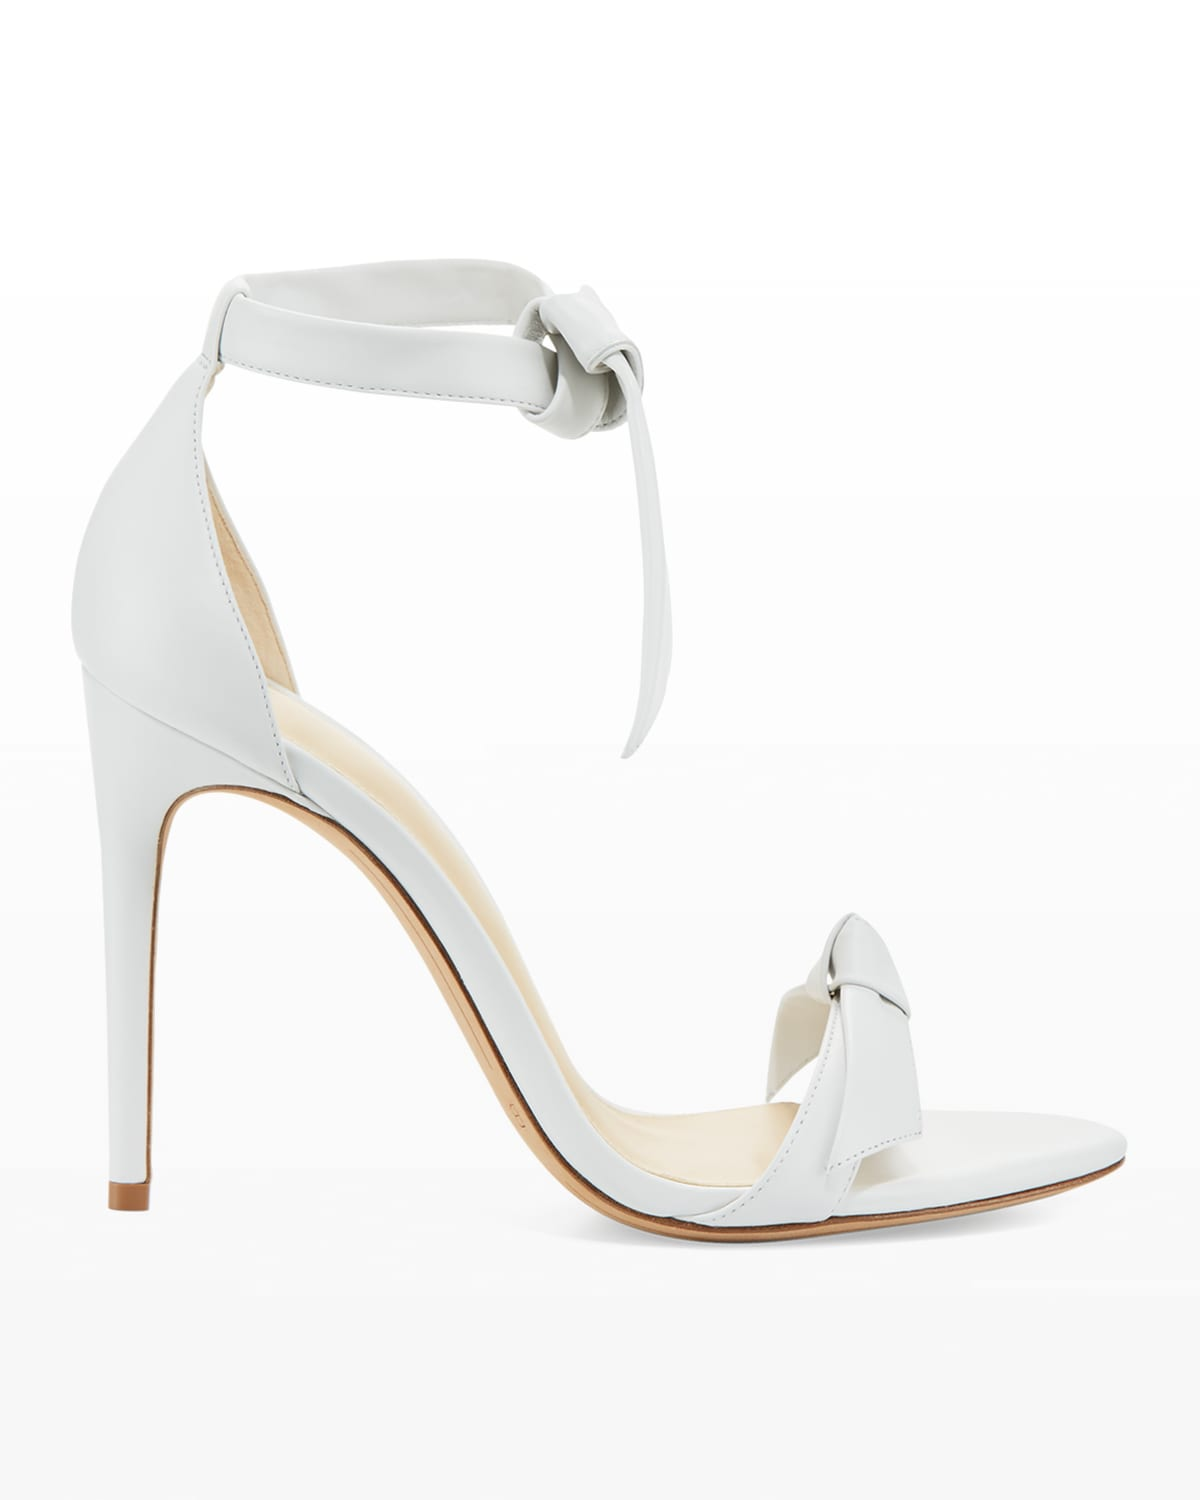 Clarita Knotted Leather High-Heel Sandals